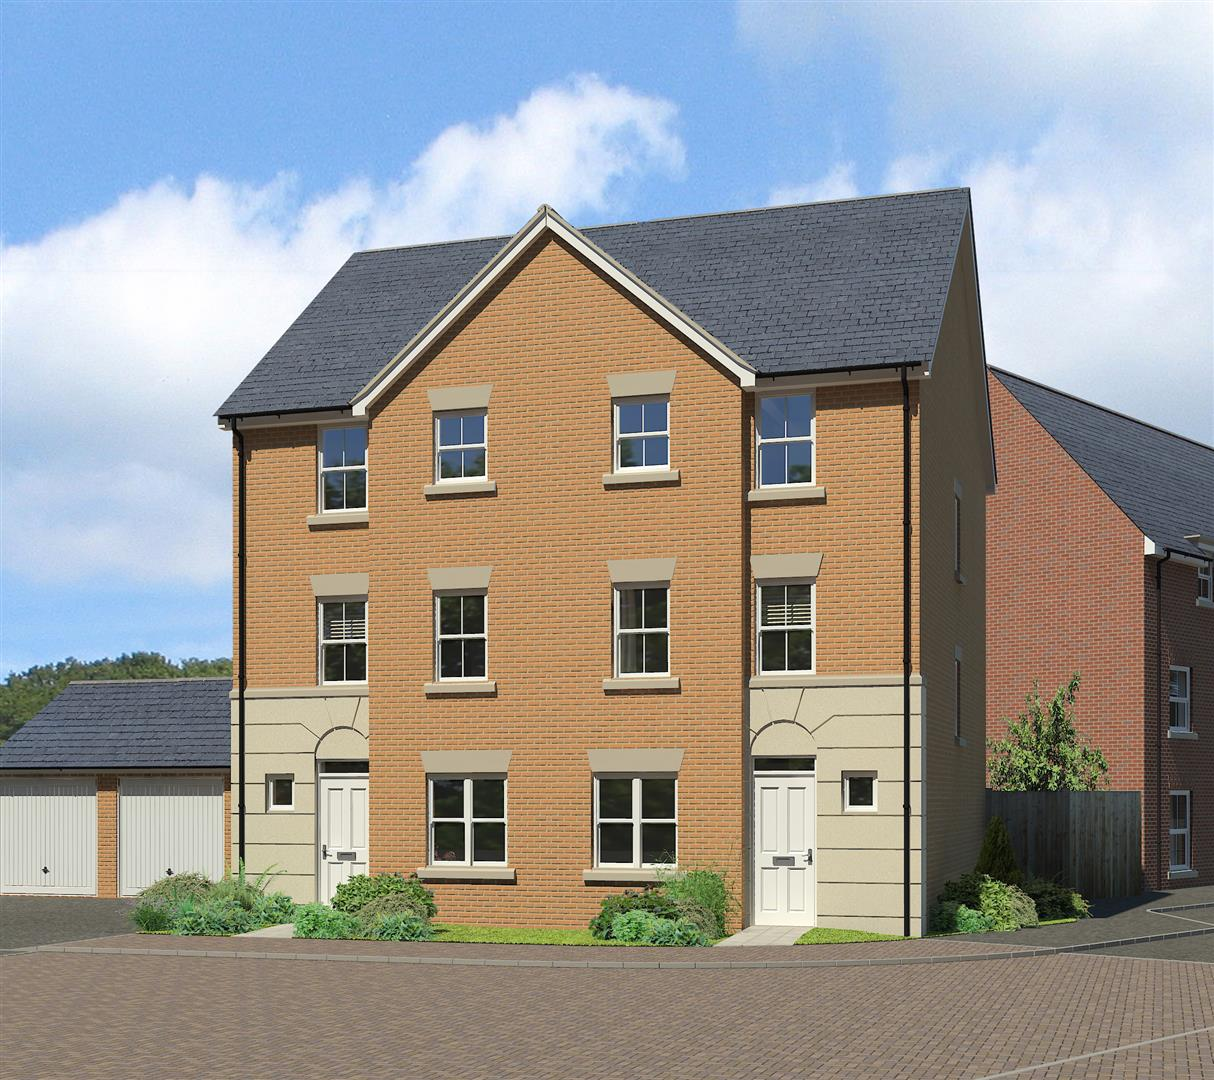 4 Bedrooms Property for sale in Truscott Avenue, Redhouse, Swindon